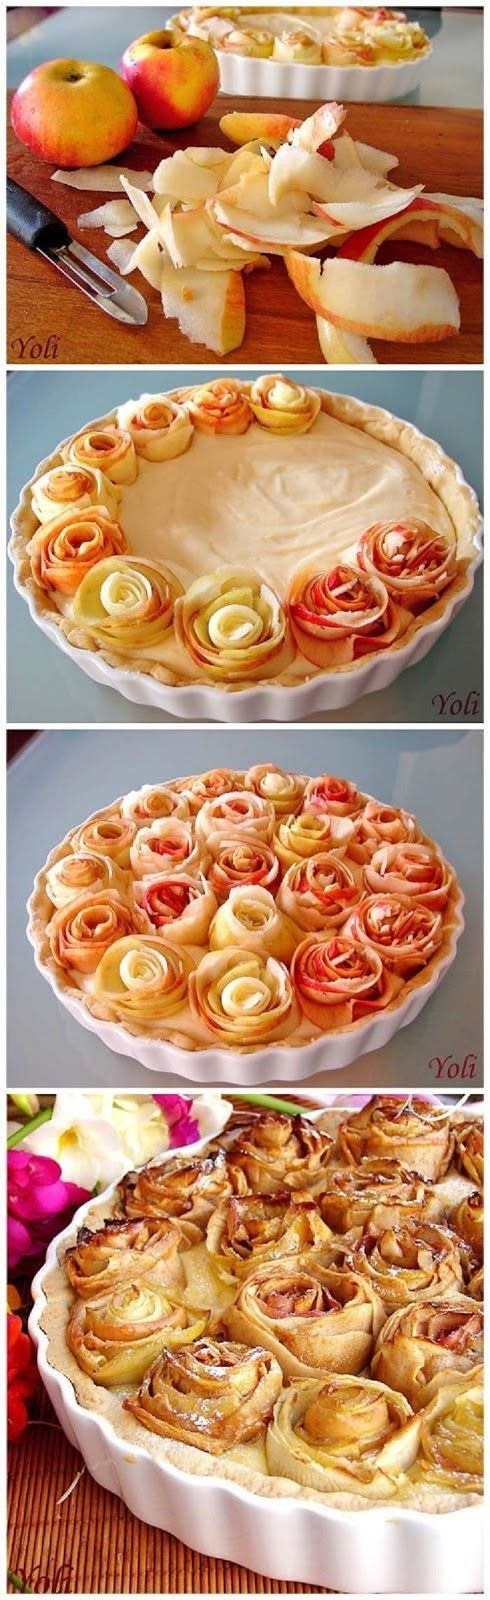 This would be nice for Thanksgiving & Christmas!  Apple Pie With Roses